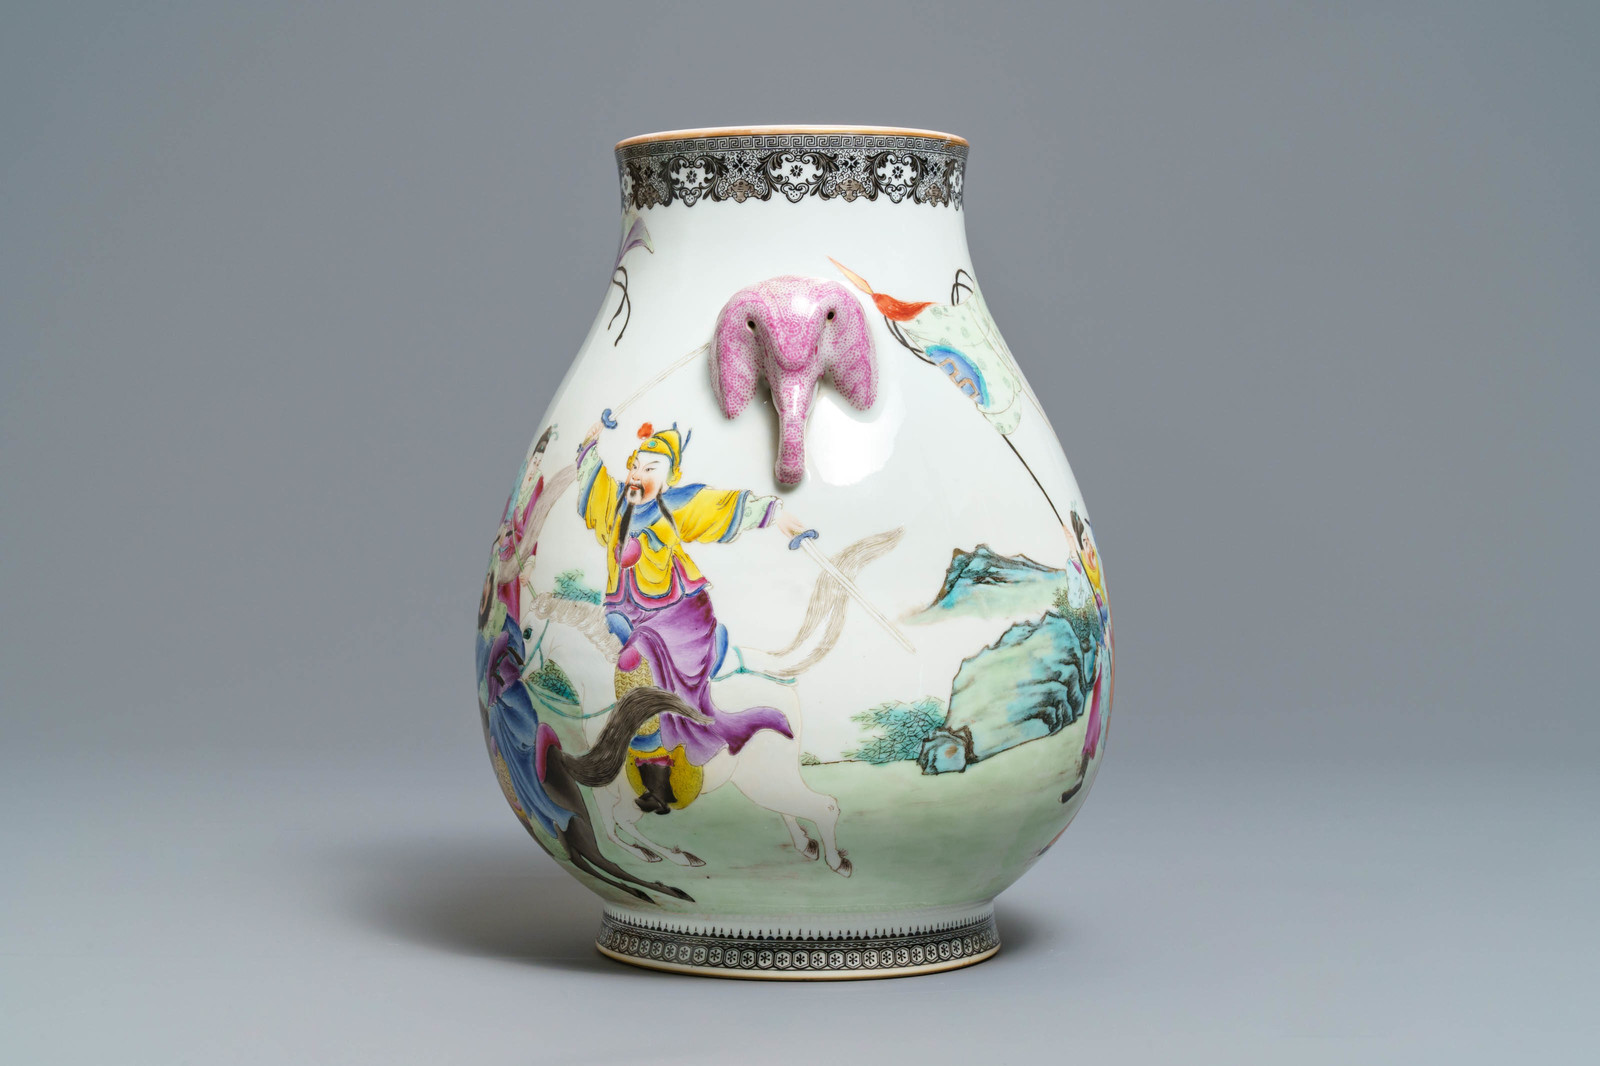 Lot 9 - A Chinese famille rose hu vase with warriors on horseback, Qianlong mark, Republic, 20th C.